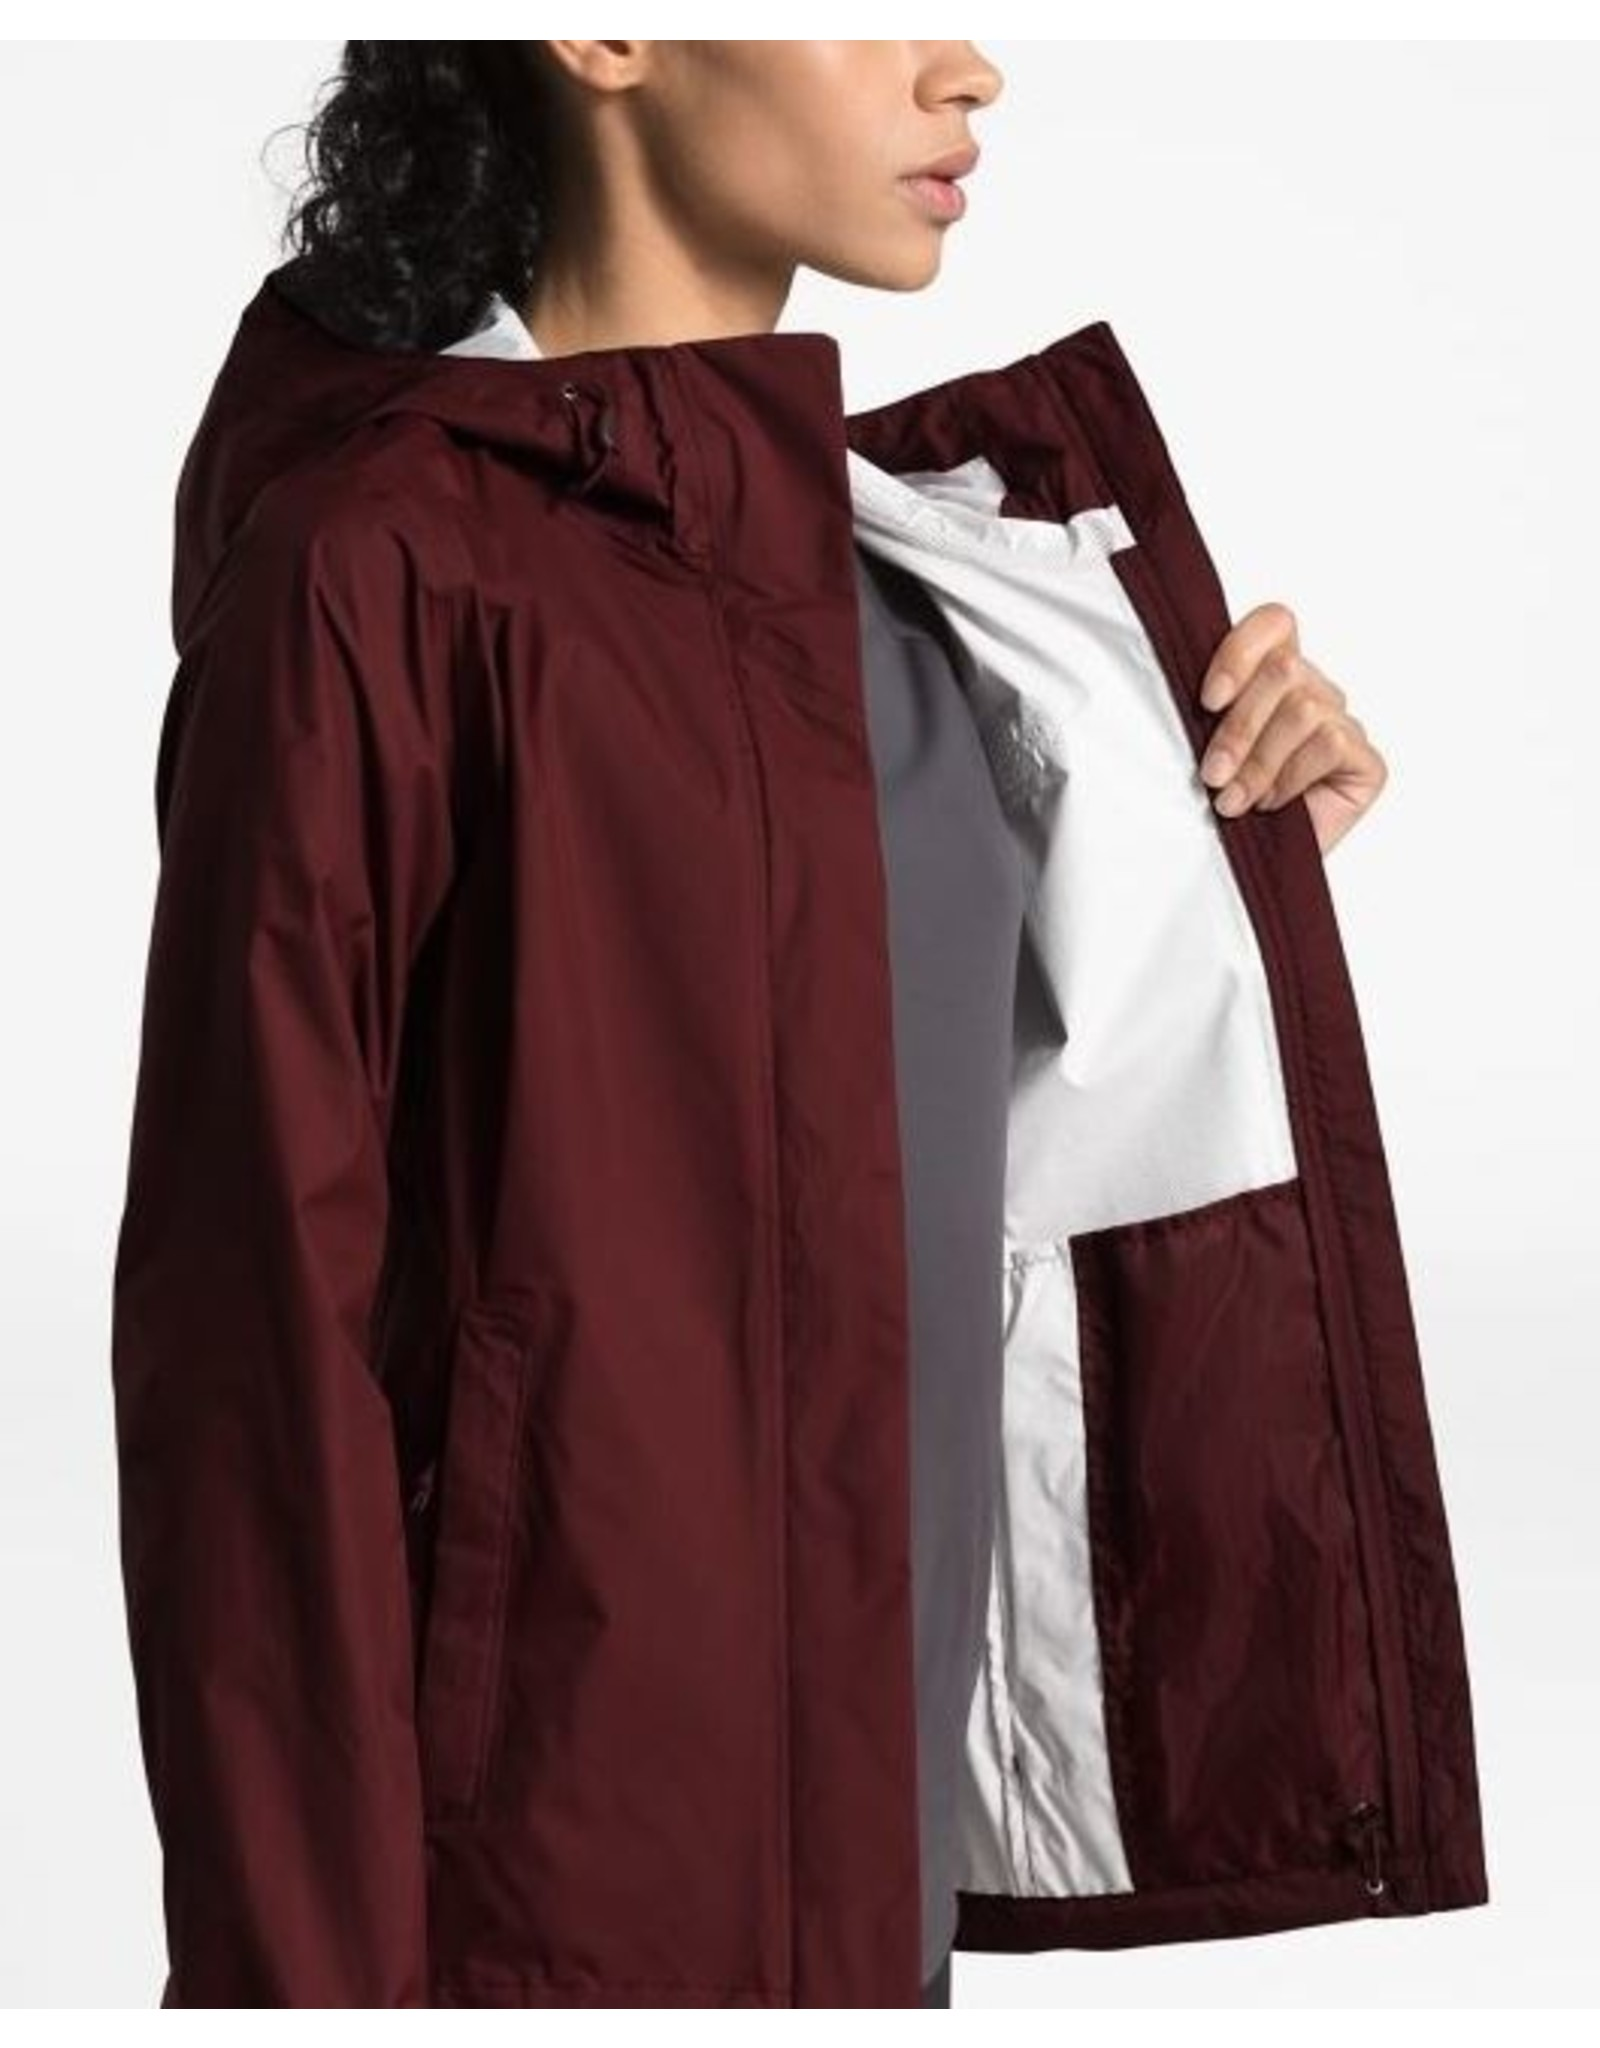 The North Face Women's Venture Jacket - 91af